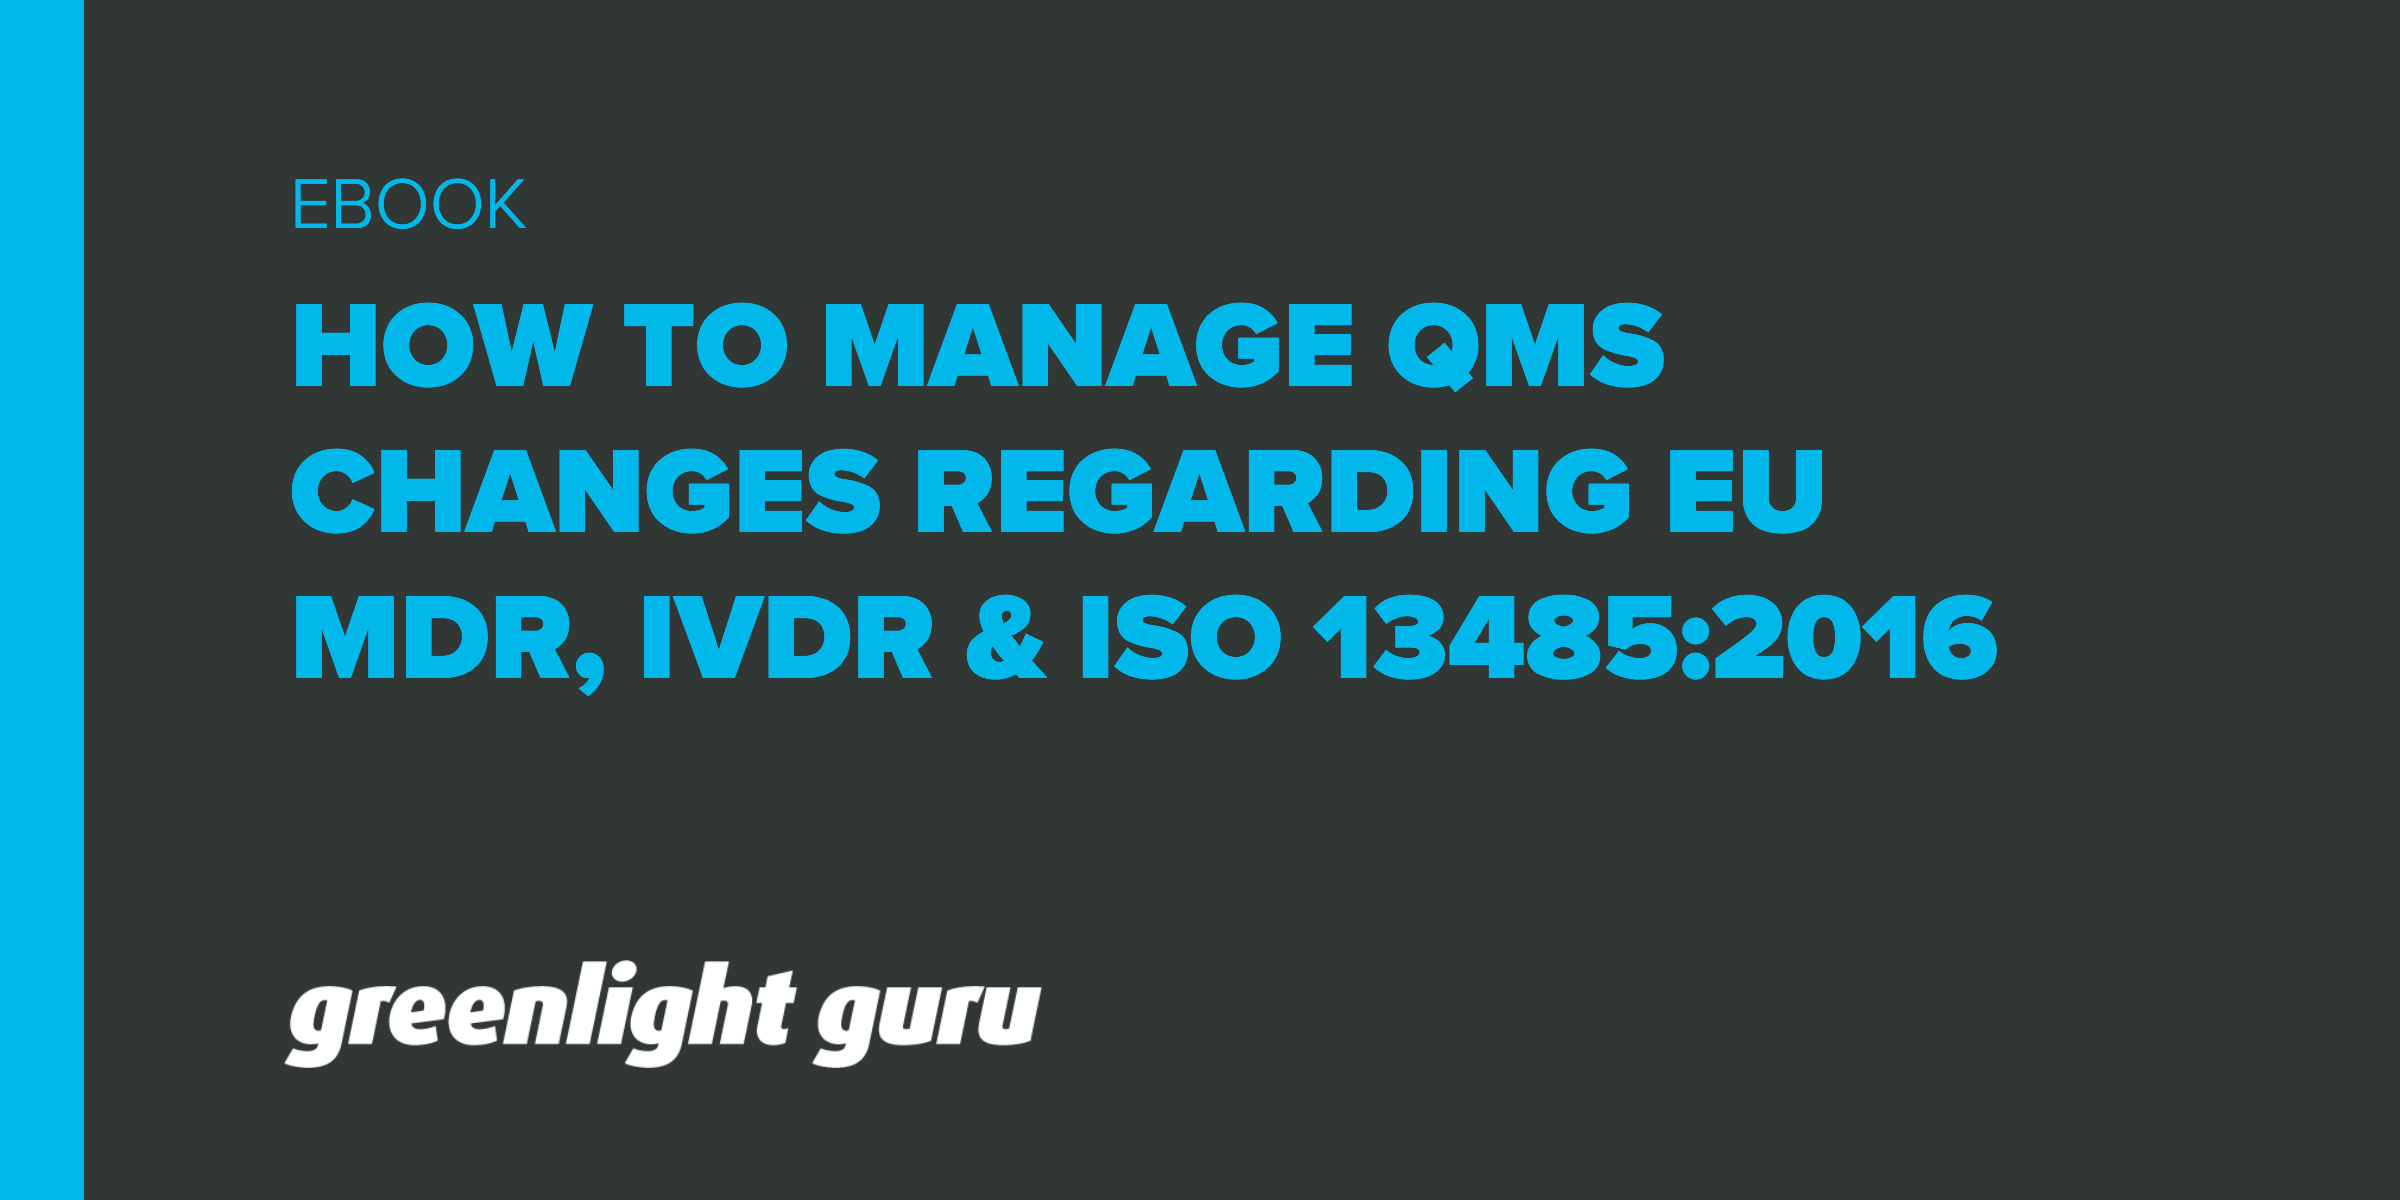 Medical Device QMS Changes: How to Manage Changes Regarding EU MDR, IVDR & ISO 13485:2016 - Featured Image